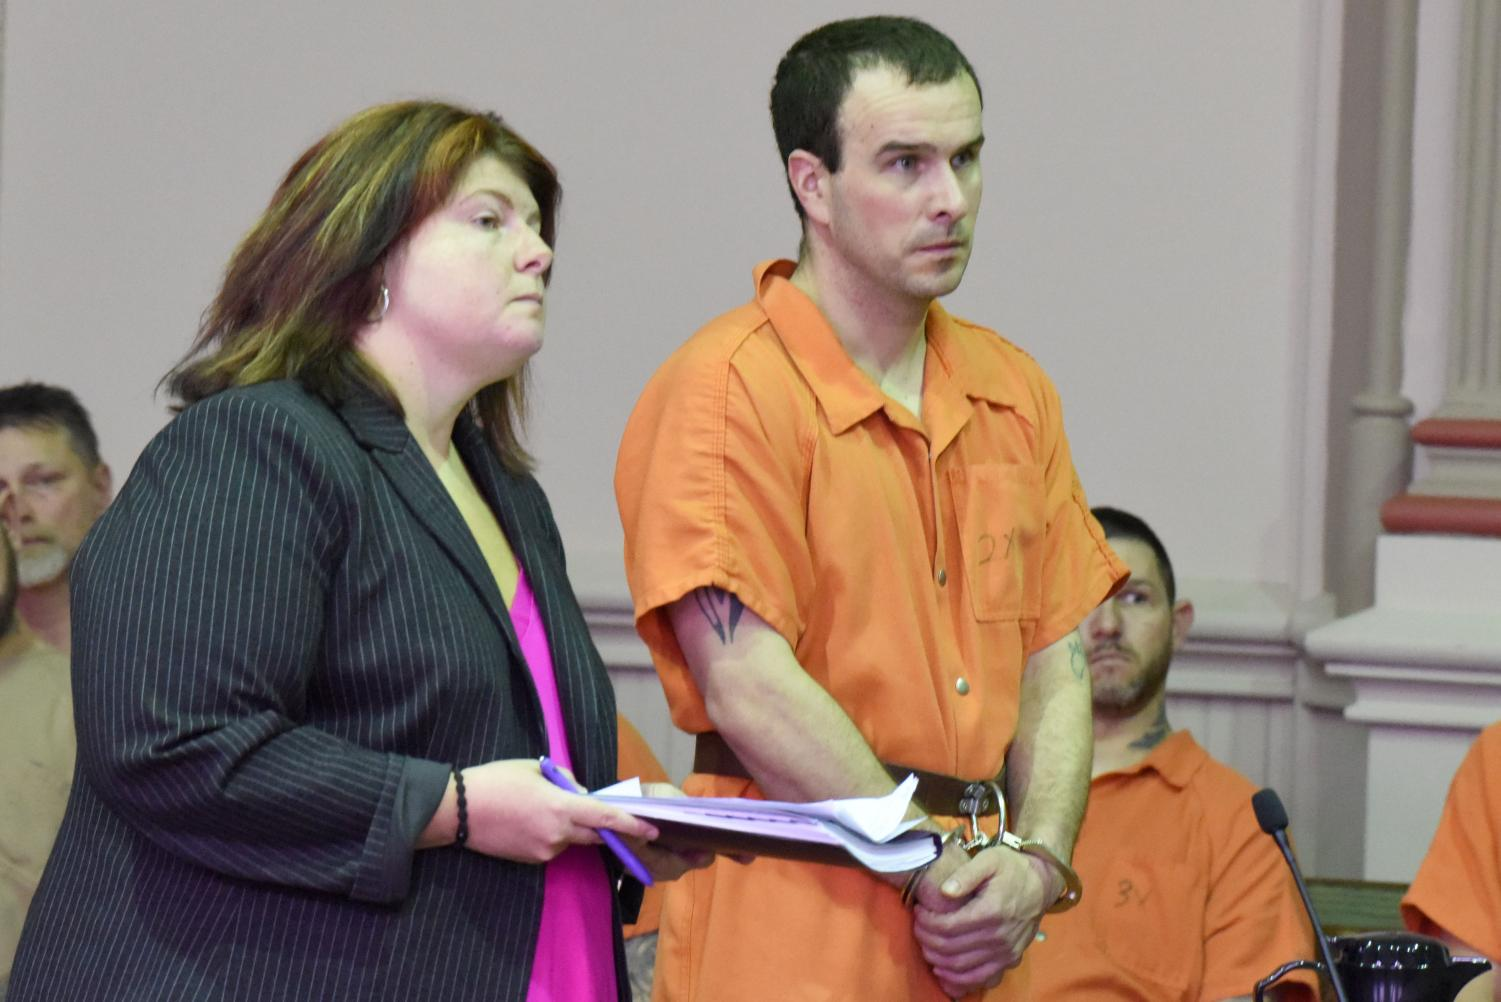 Stephen Niles Jr. pleads not guilty to charges related to a Dec. 9 arson investigation in Wayne Township.